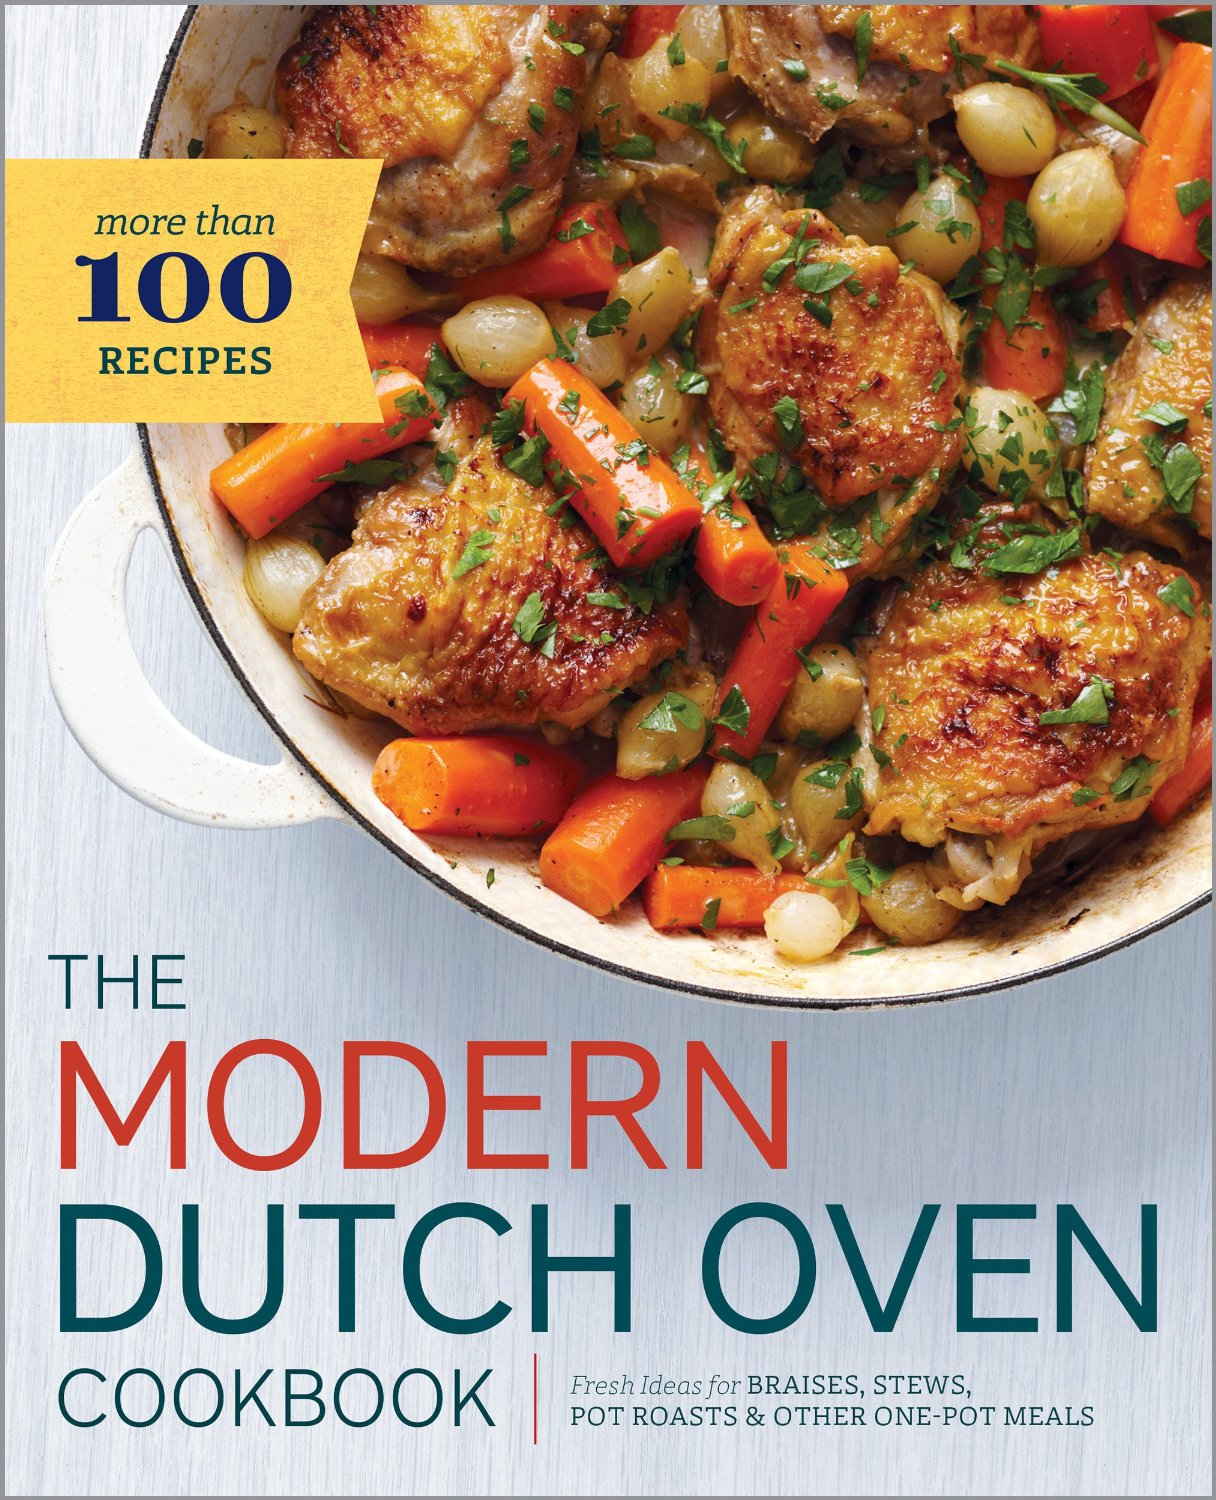 The Modern Dutch Oven Cookbook free download